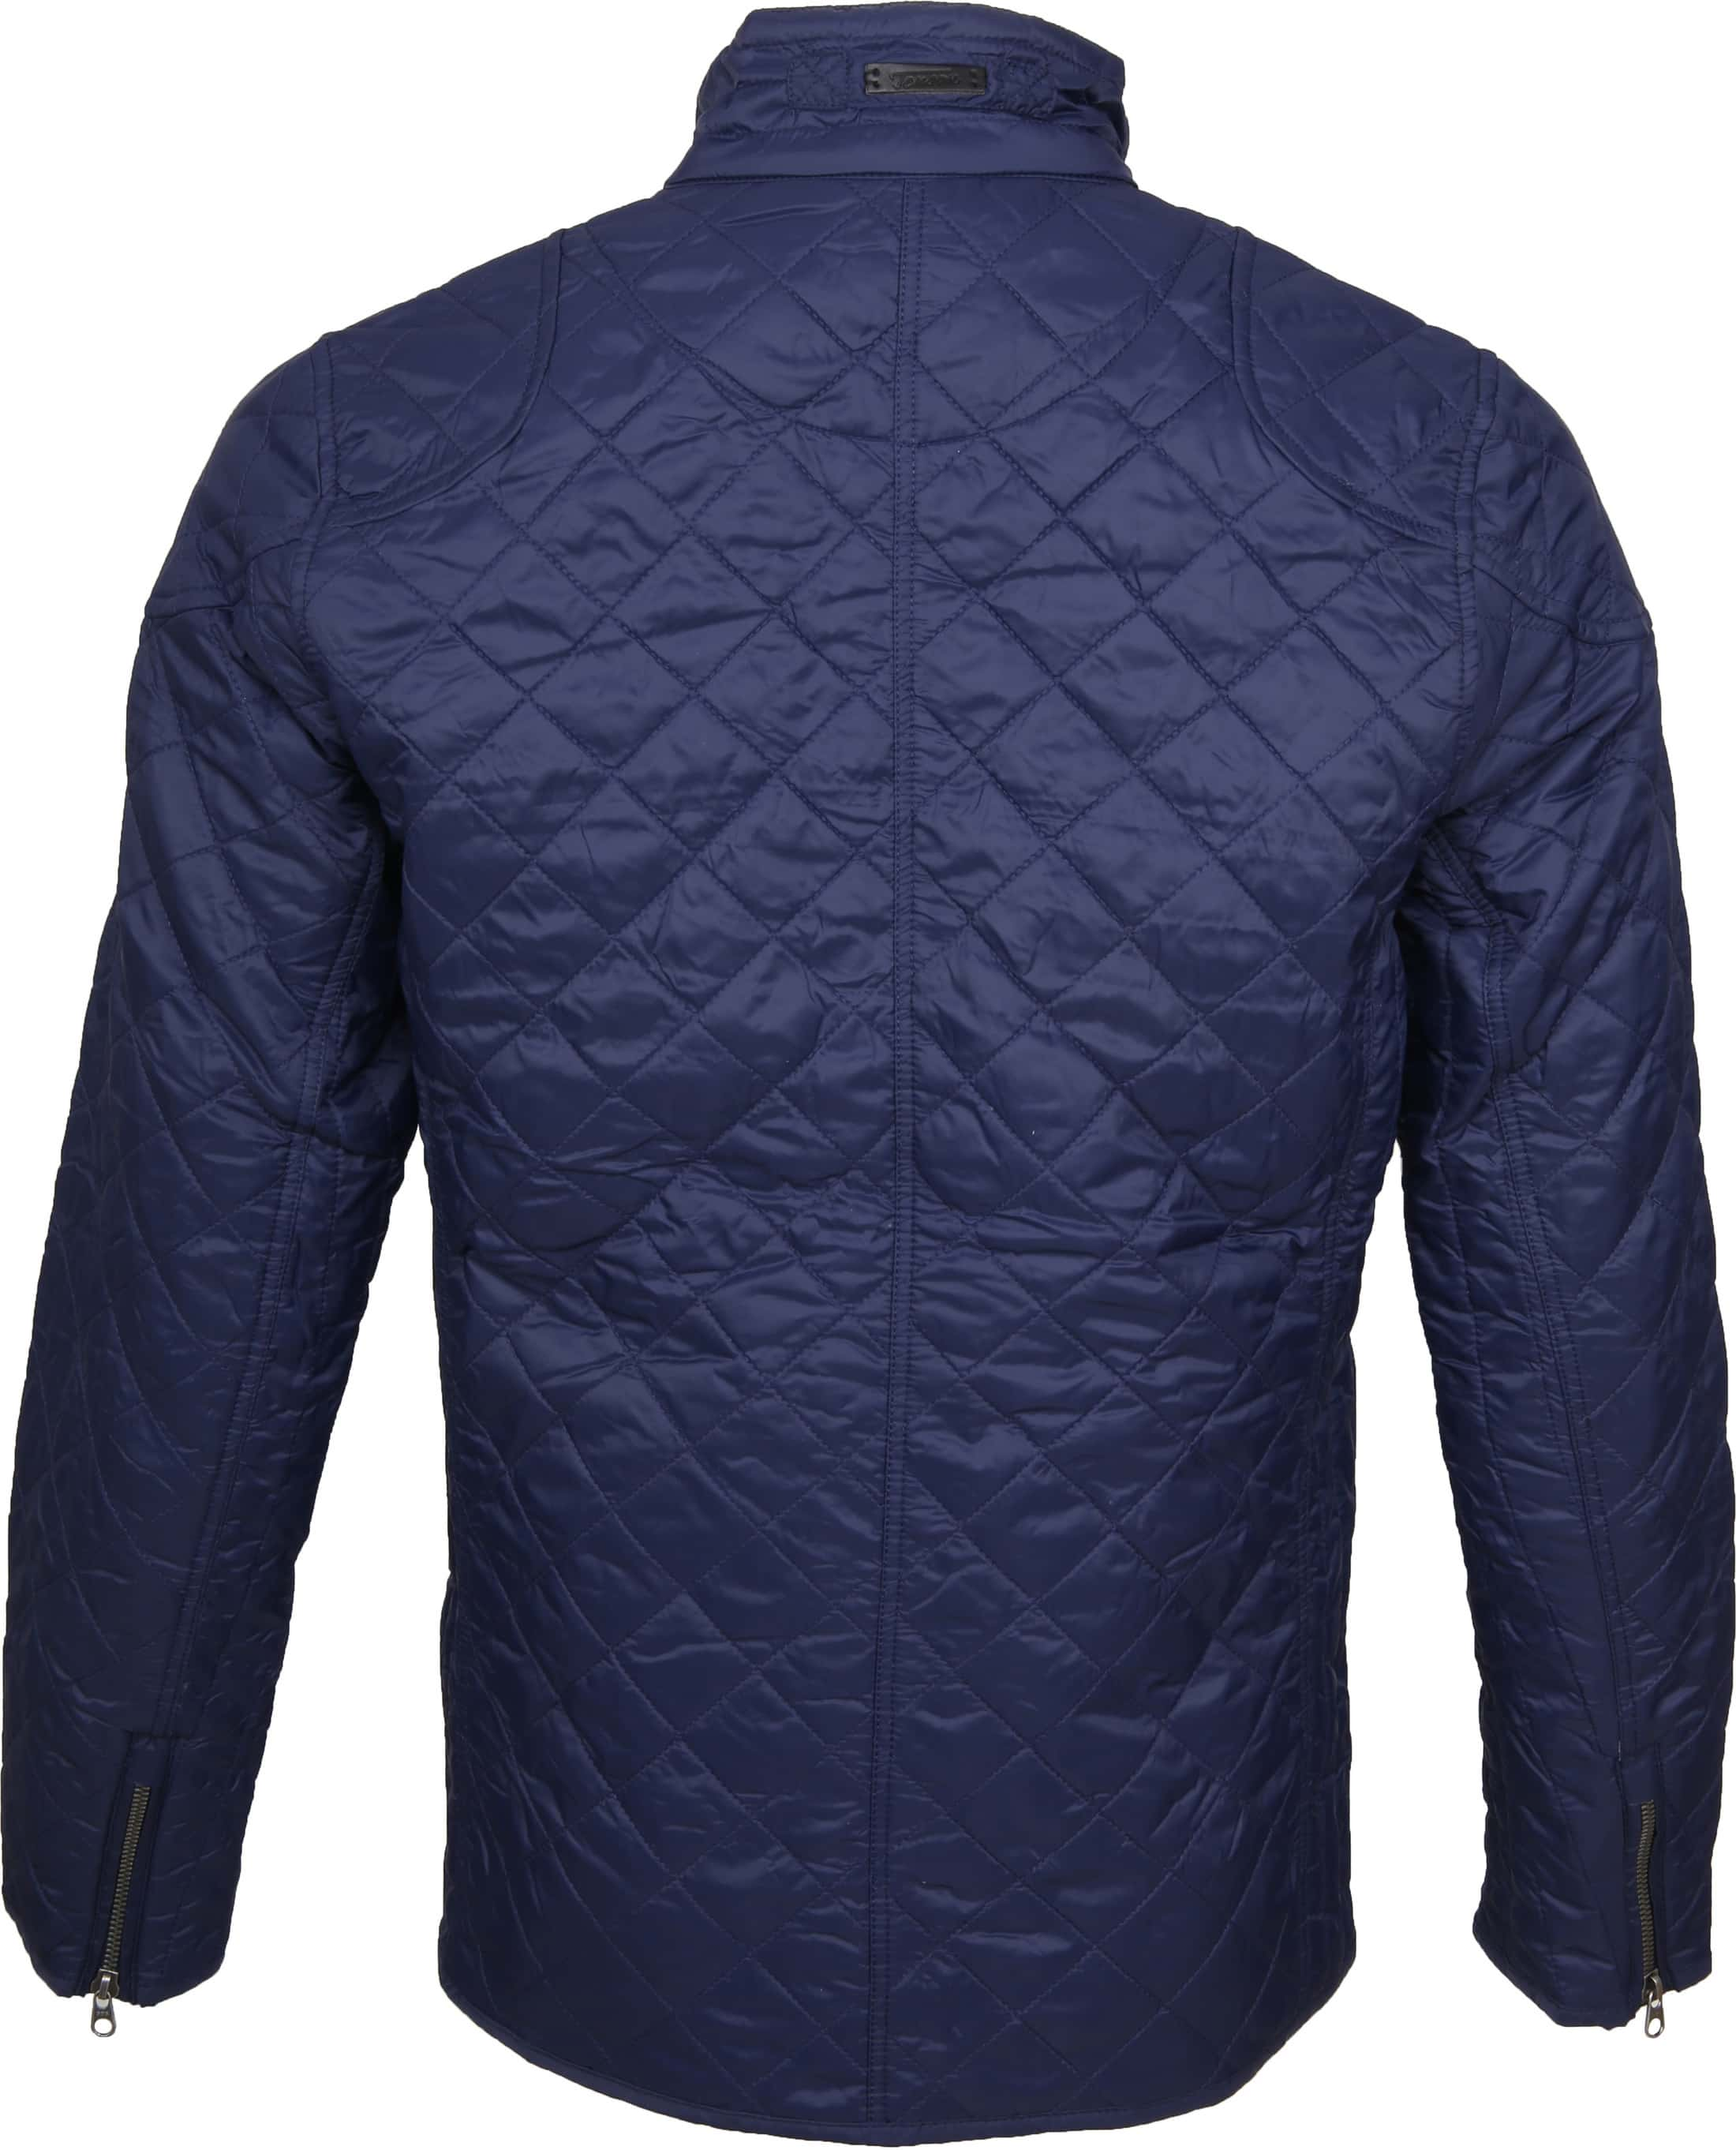 Tenson Samson Jack Quilted Navy foto 5